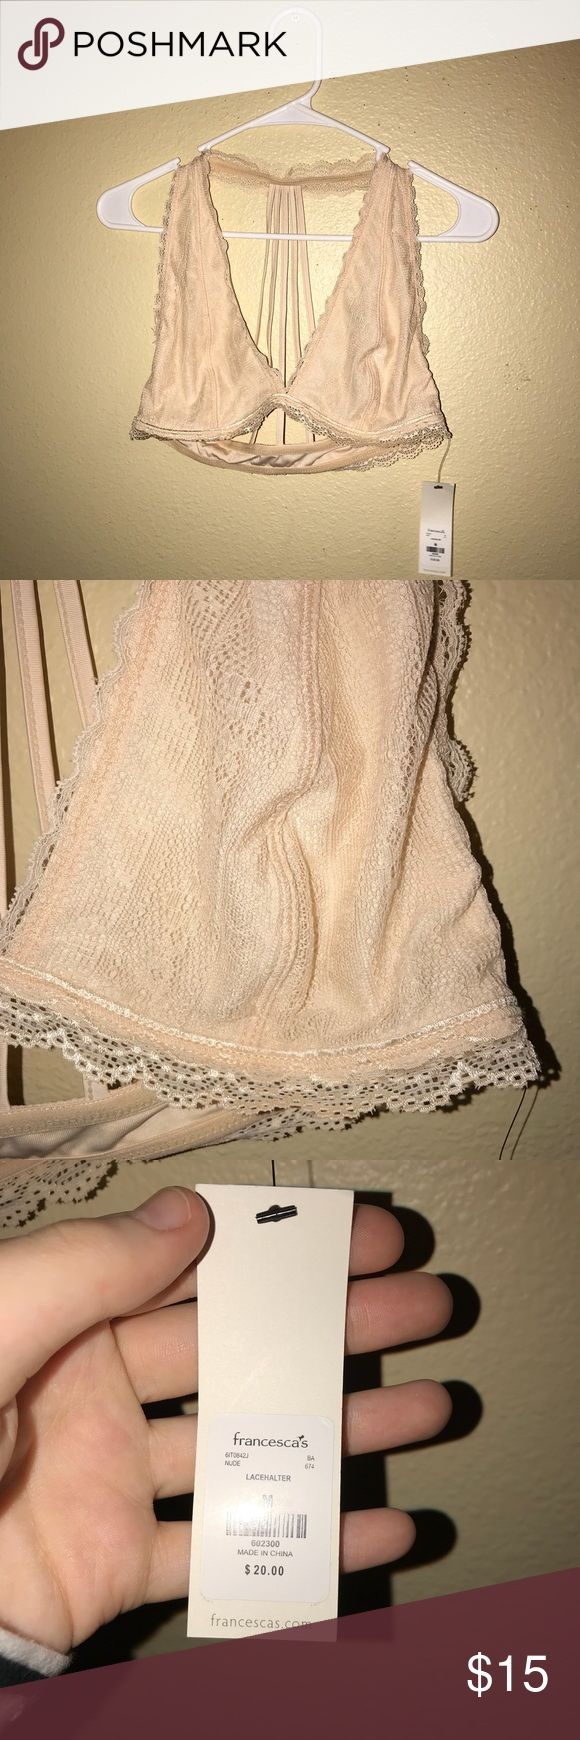 Francesca's Beige Lace Trim Bralette Brand new, tags still attached. This bralette is so cute and perfect for any season. It's great to be used as a regular bra or with tops or dresses that are lower cut, off the shoulder, or have a lower back. It's a beige color and is a size medium.     • all sales final (unless due to an error on my part)  • smoke free home  • no trades or holds  • no models Francesca's Collections Intimates & Sleepwear Bras